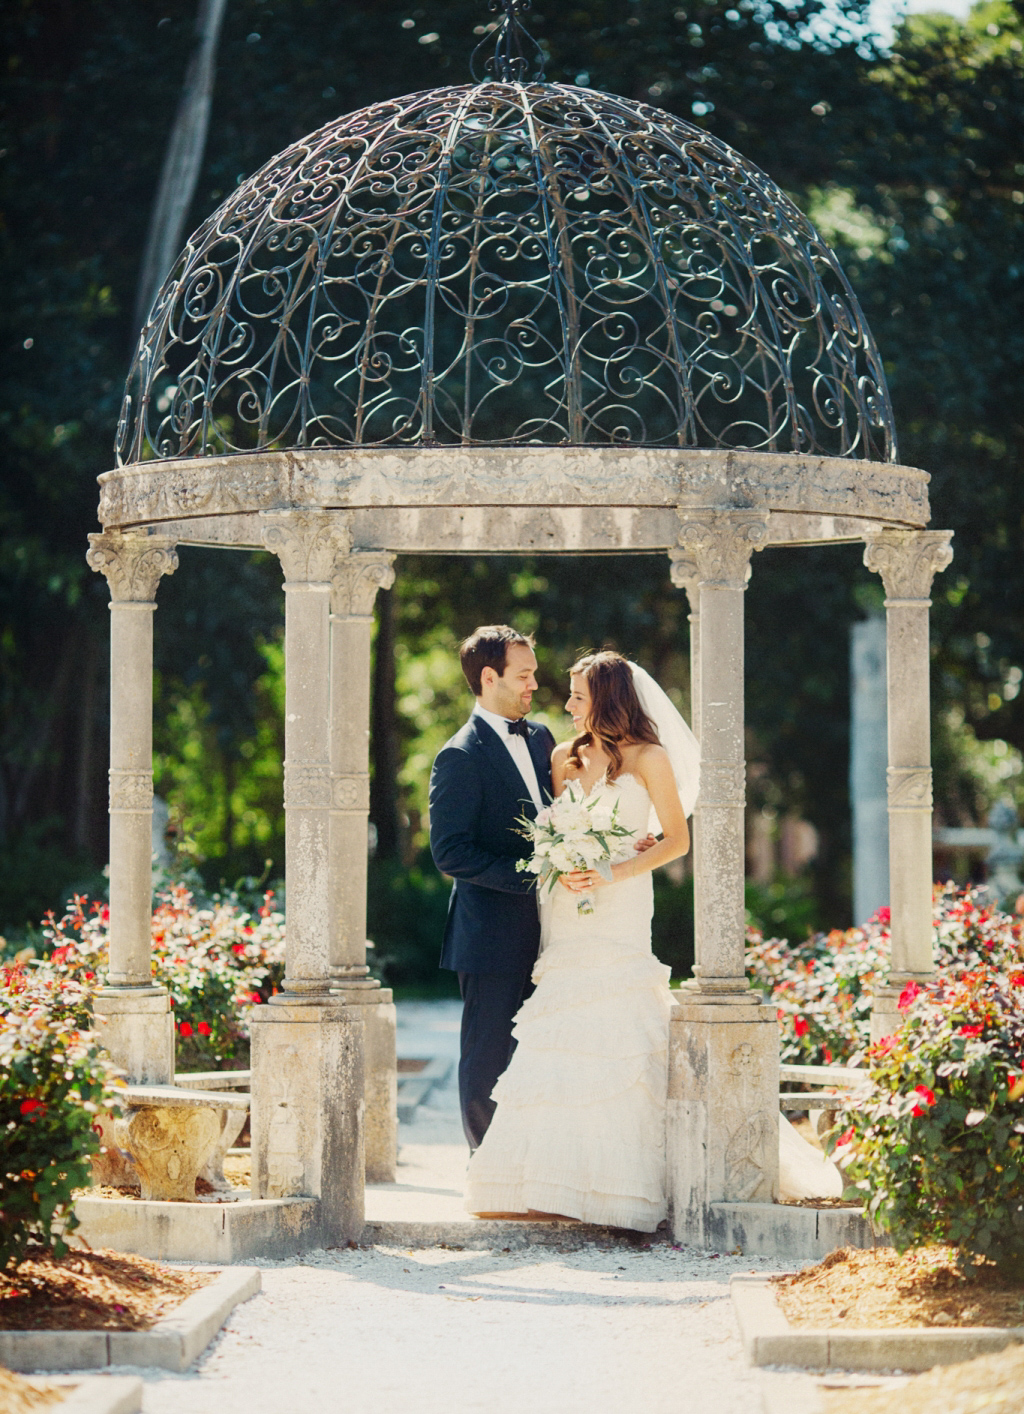 Teresa & Brandon | Ringling Museum Wedding in Sarasota